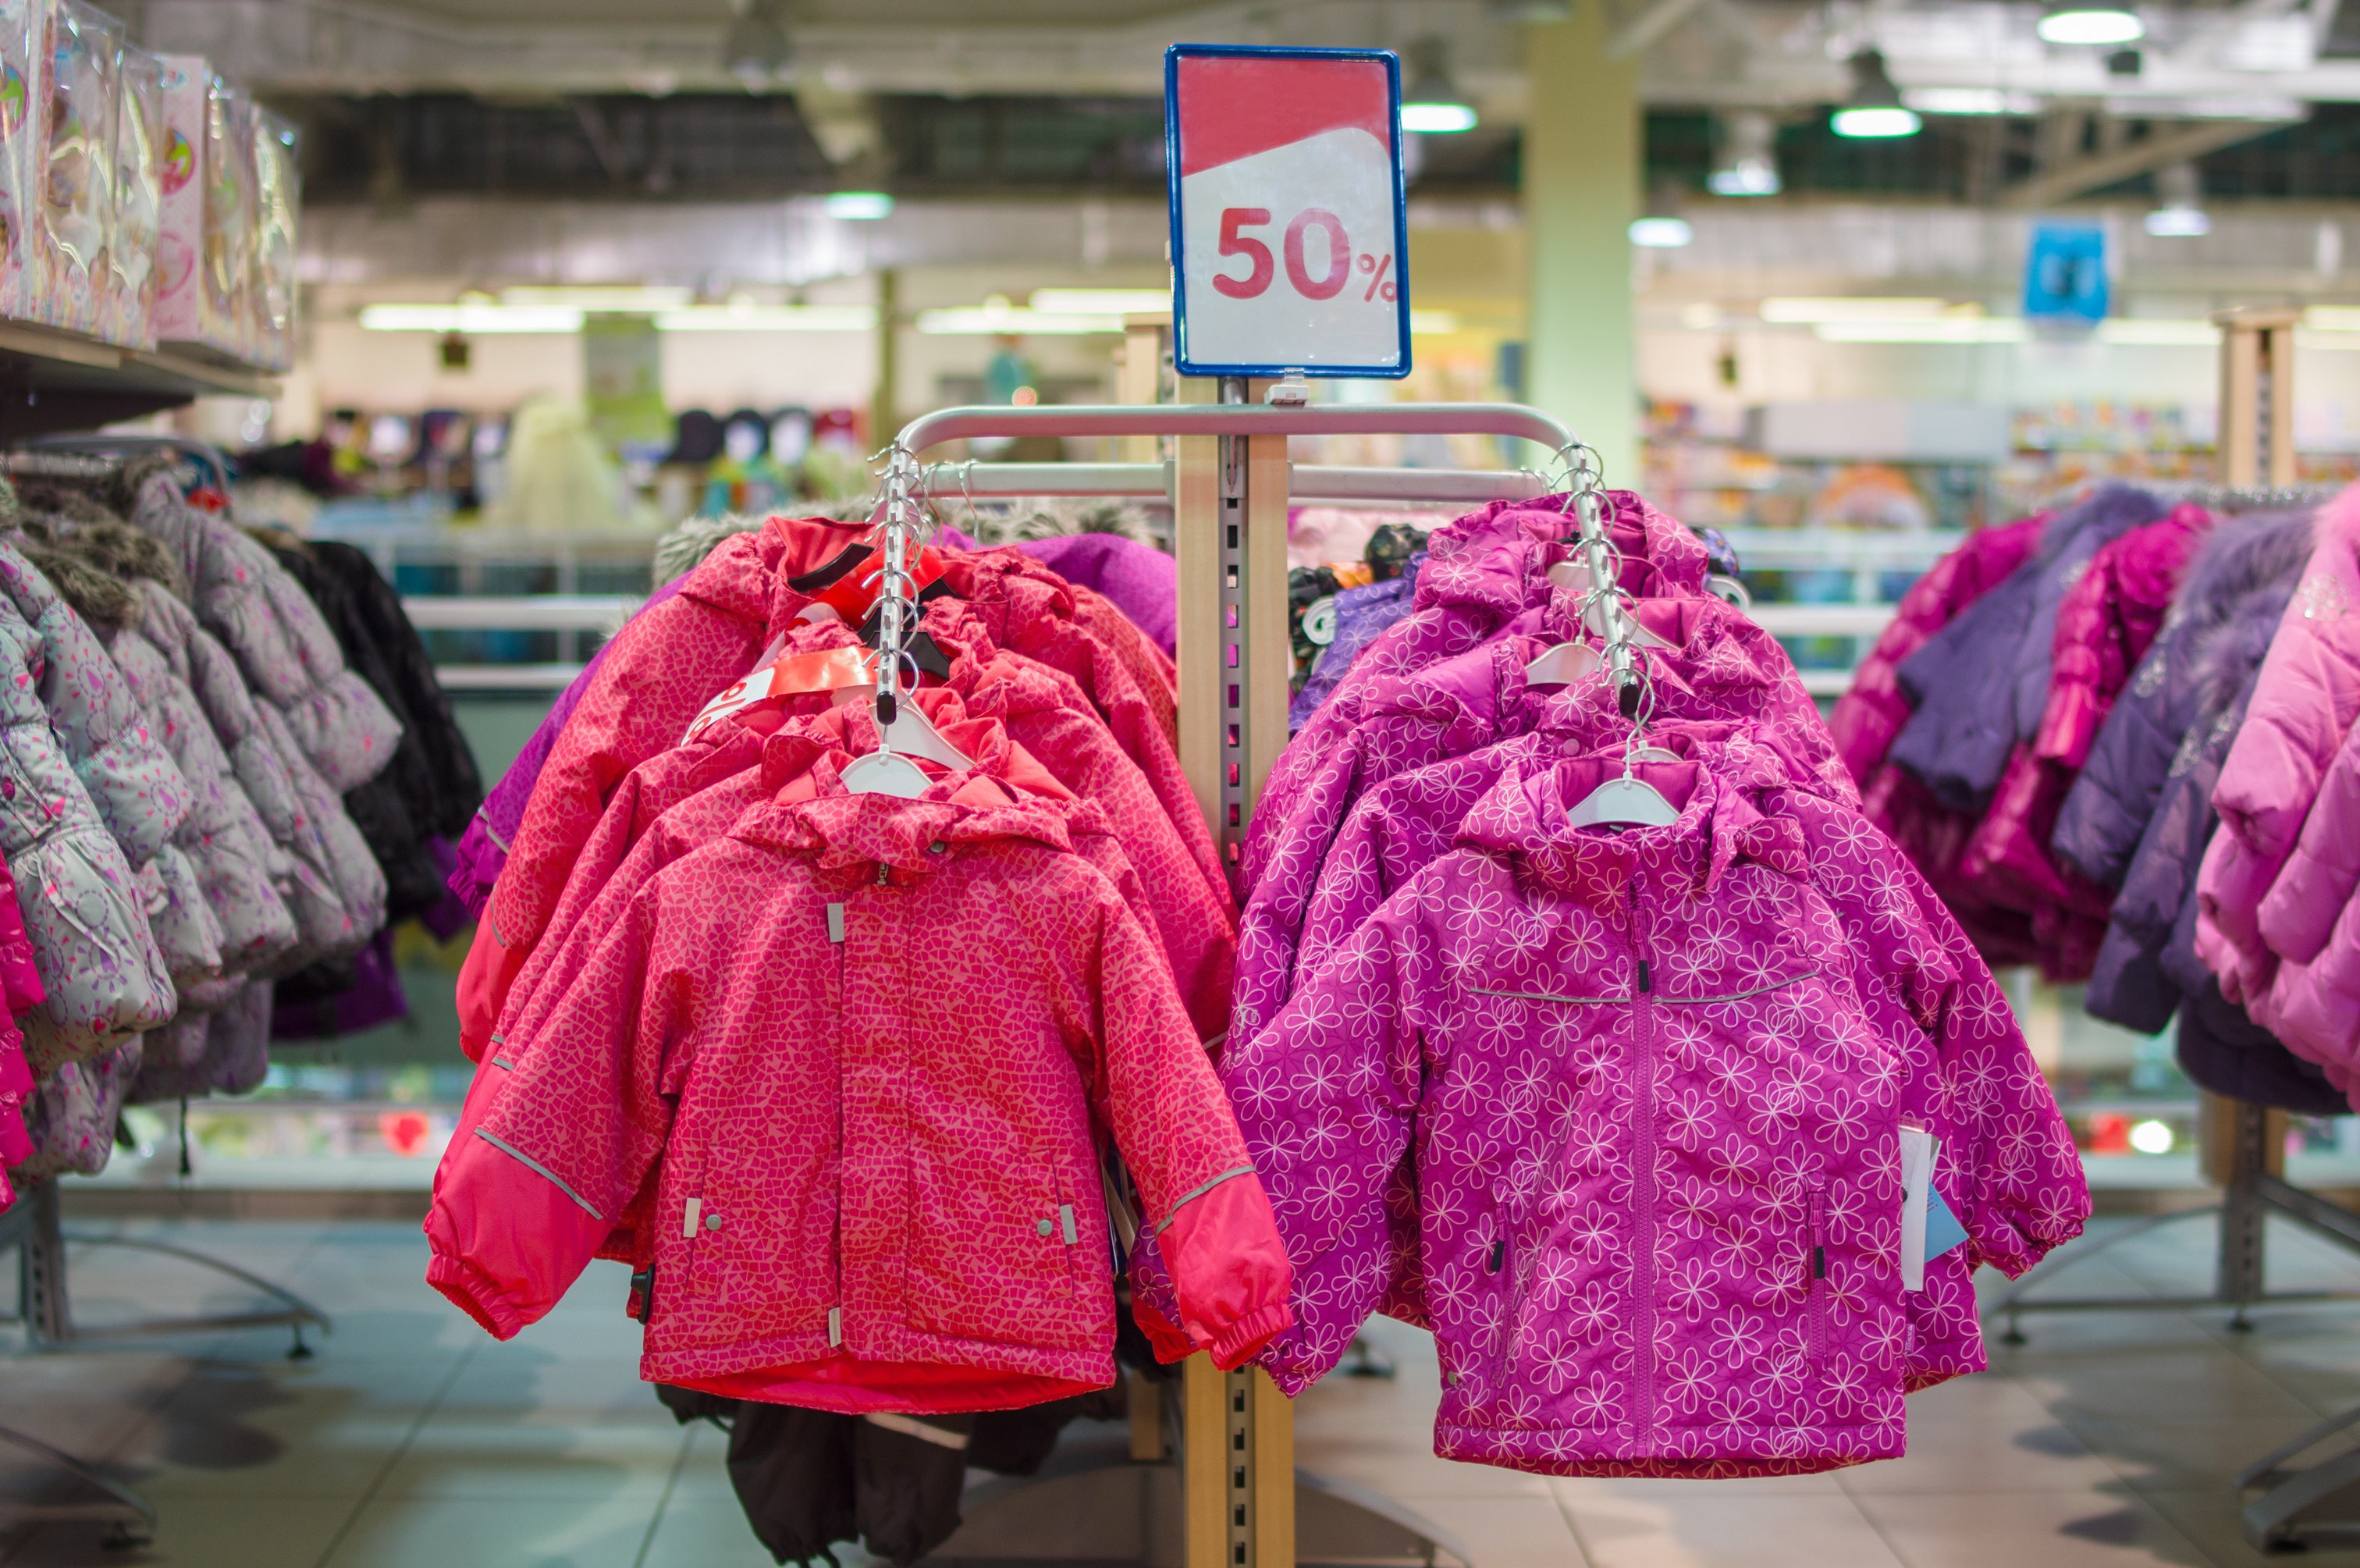 Winter jackets for kids on stands in store